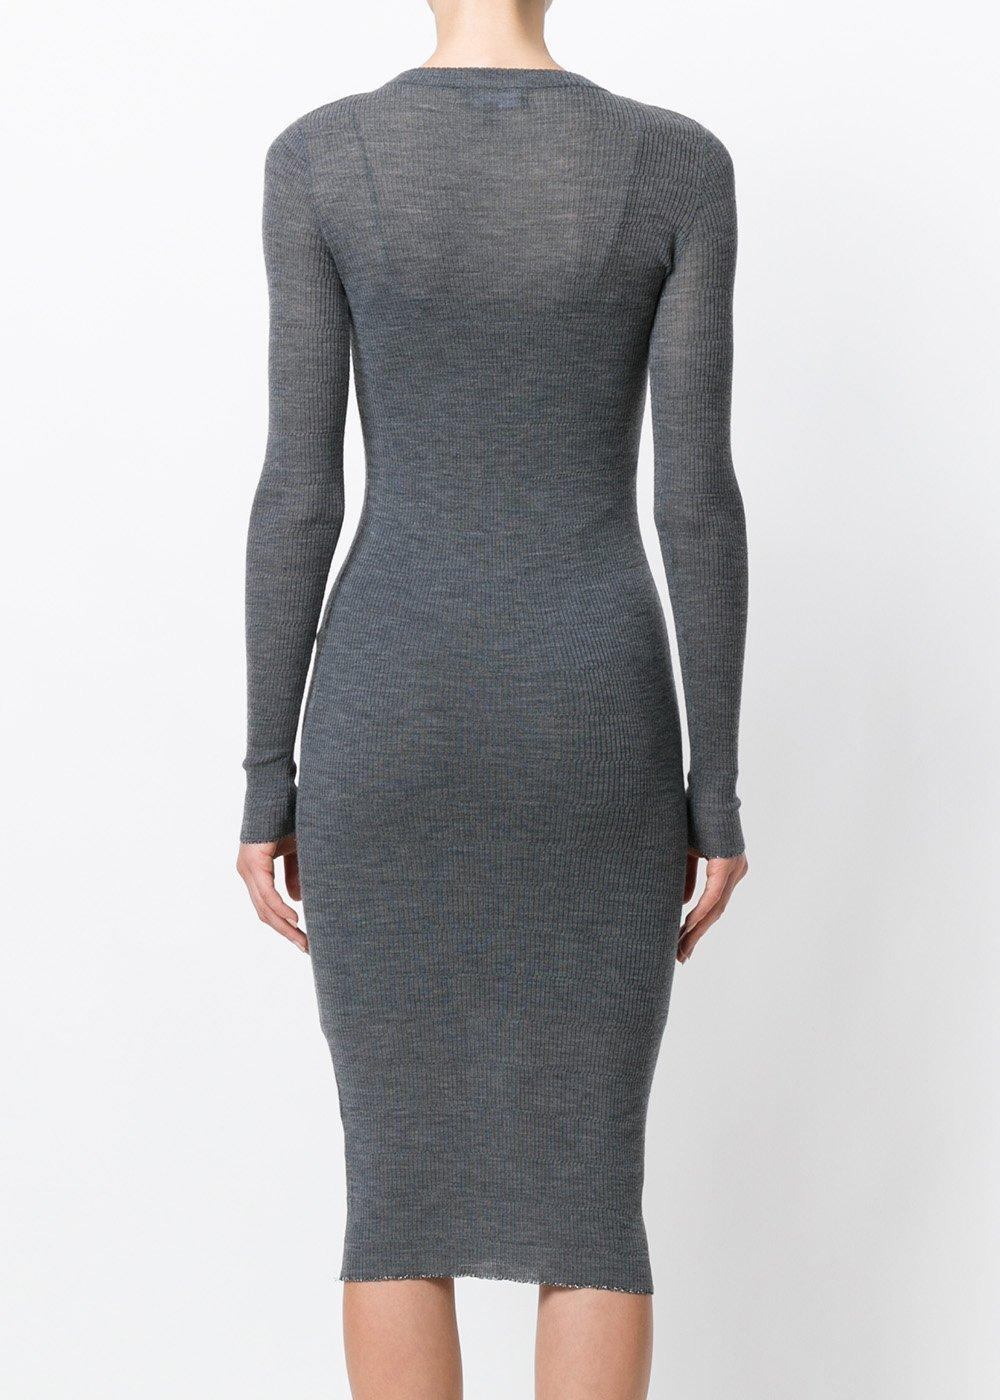 Tiera fine knit dress - Grey Cashmere in Love sUjPS